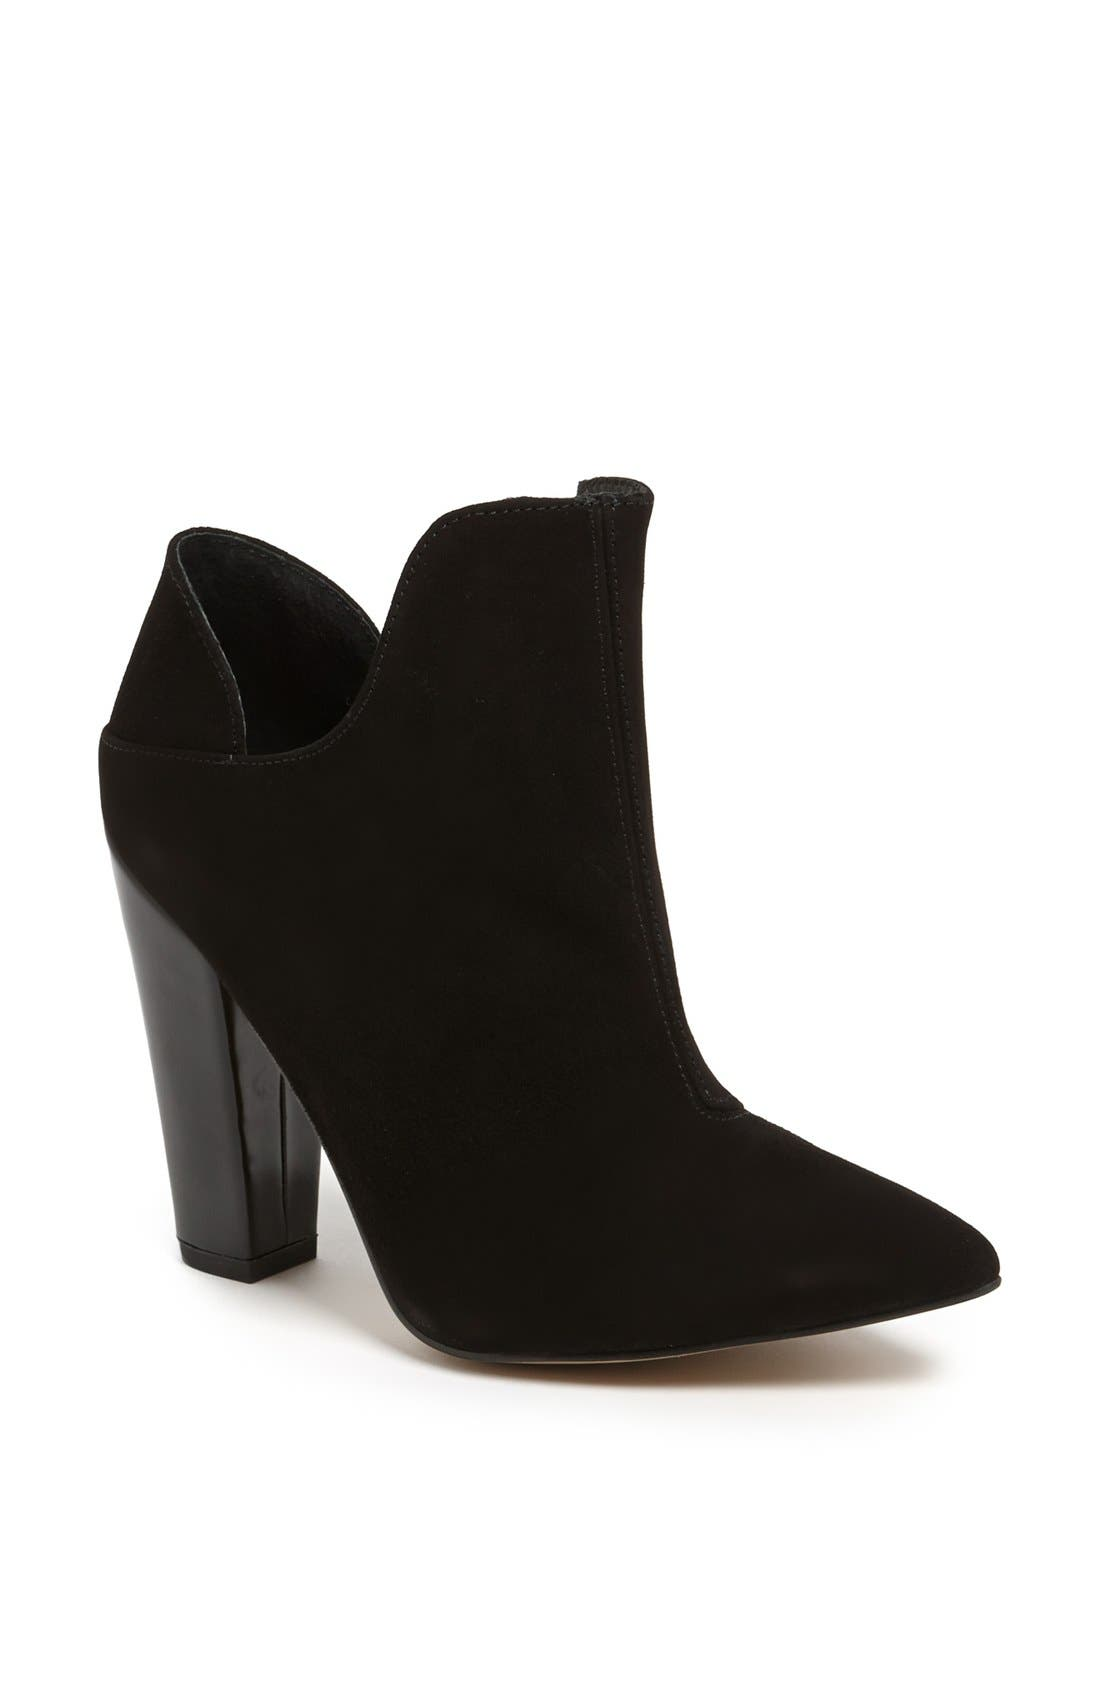 Alternate Image 1 Selected - Topshop 'Again' Ankle Boot